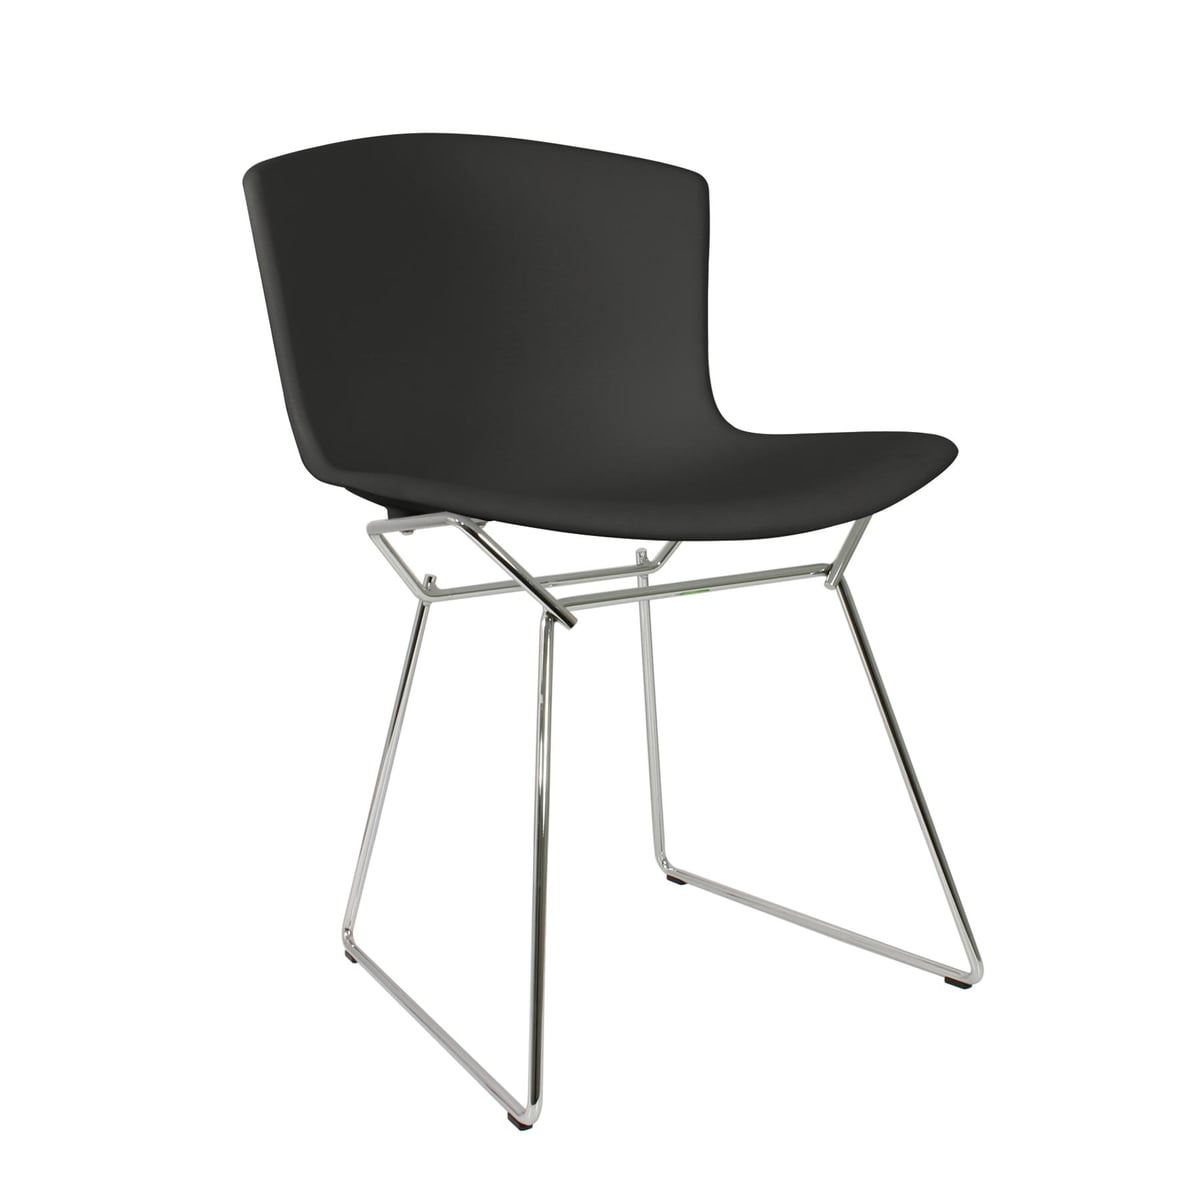 Bertoia plastic chair by knoll in the shop for Bertoia chaise prix